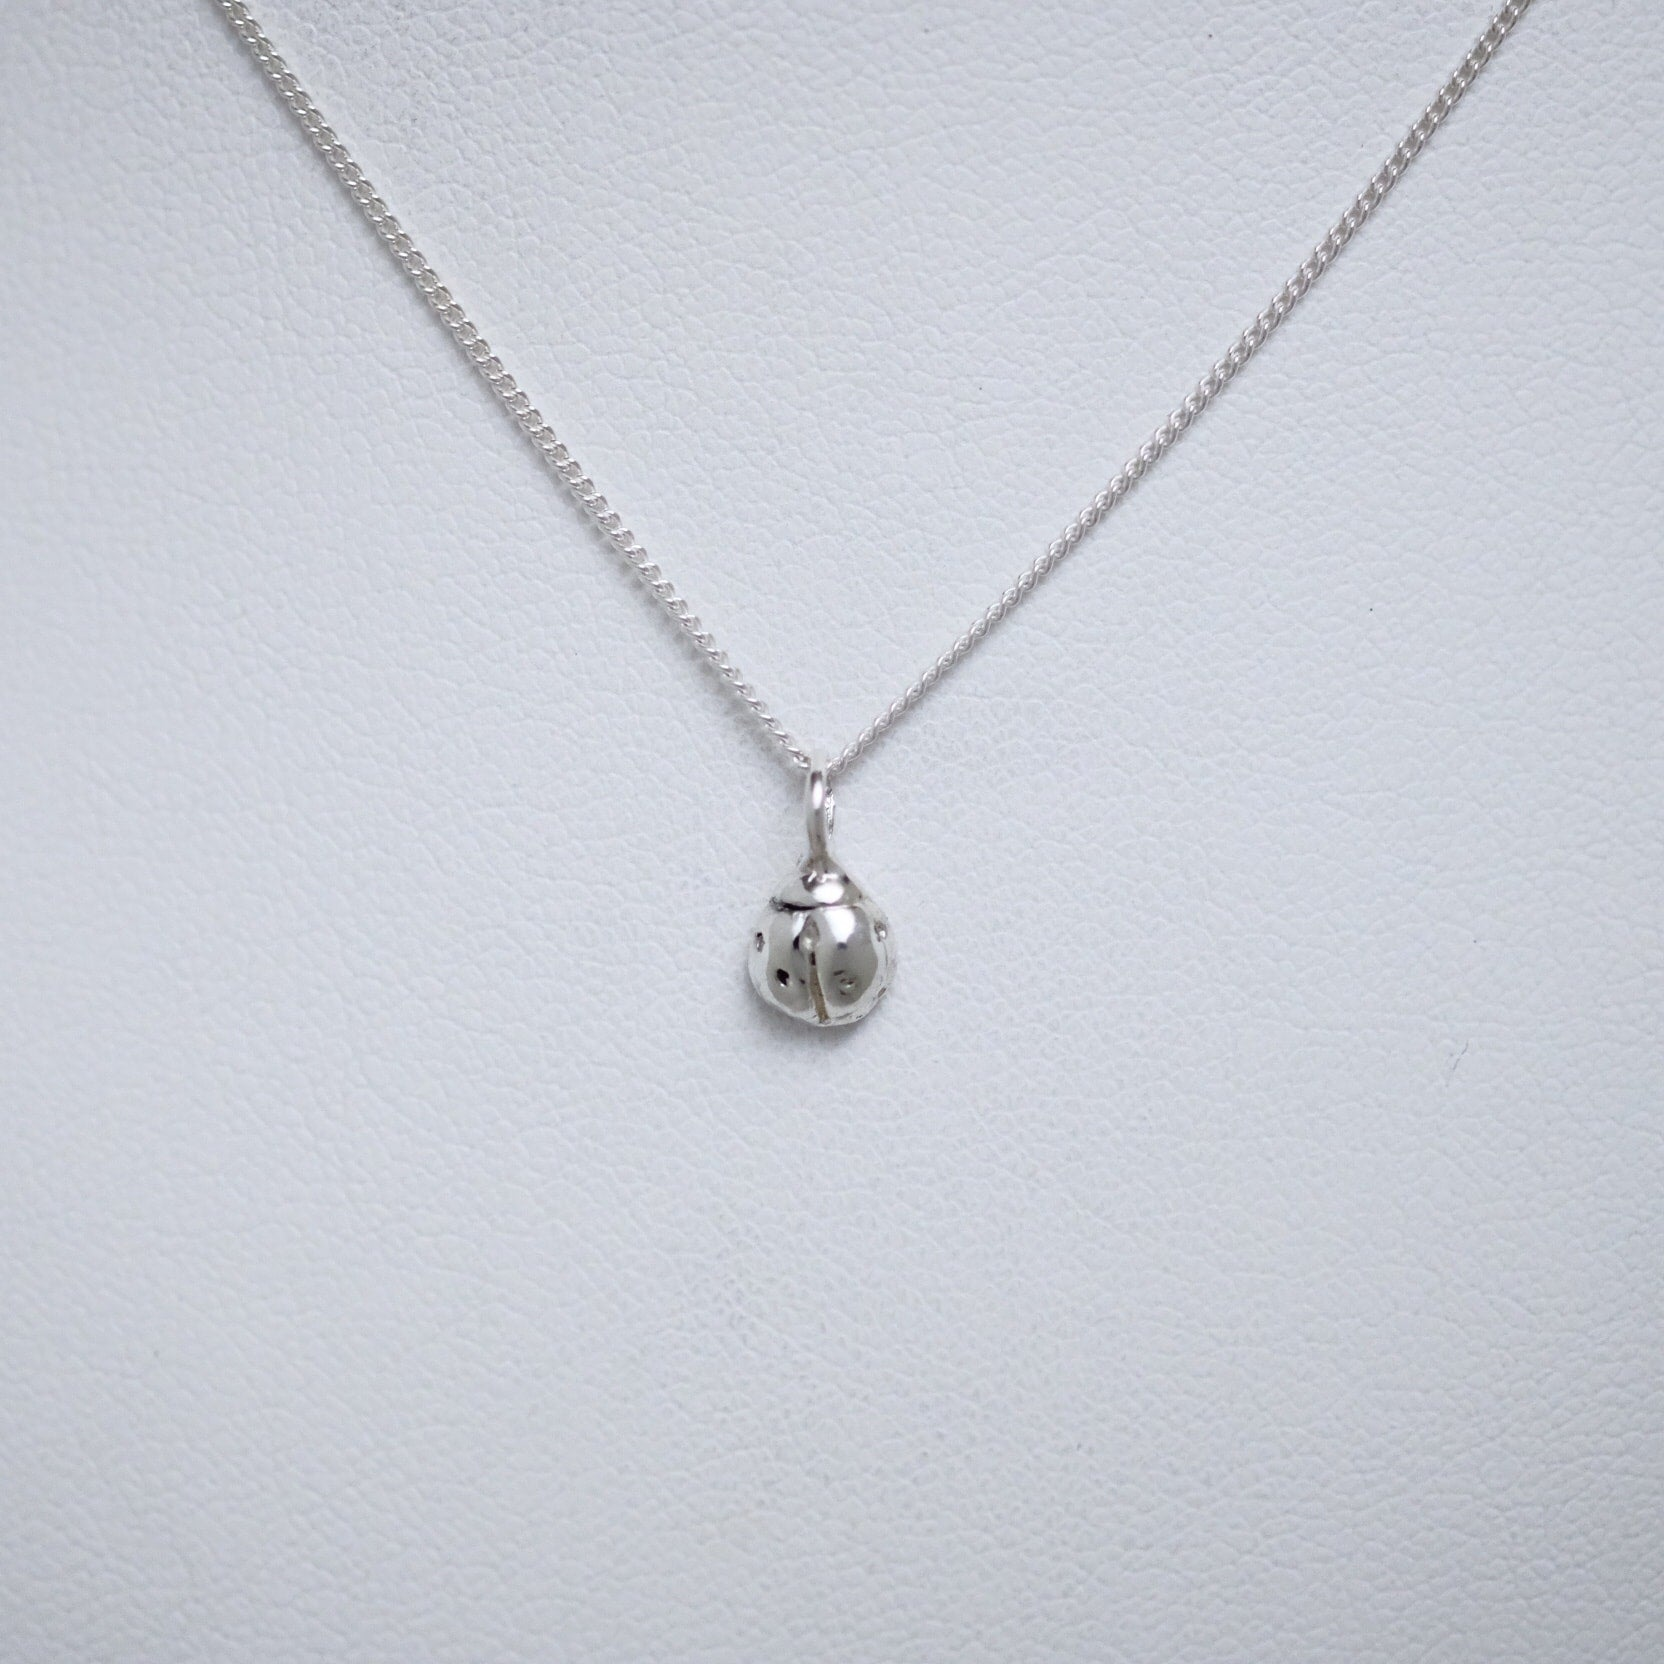 Small sterling silver ladybug necklace by Joseph Chiang